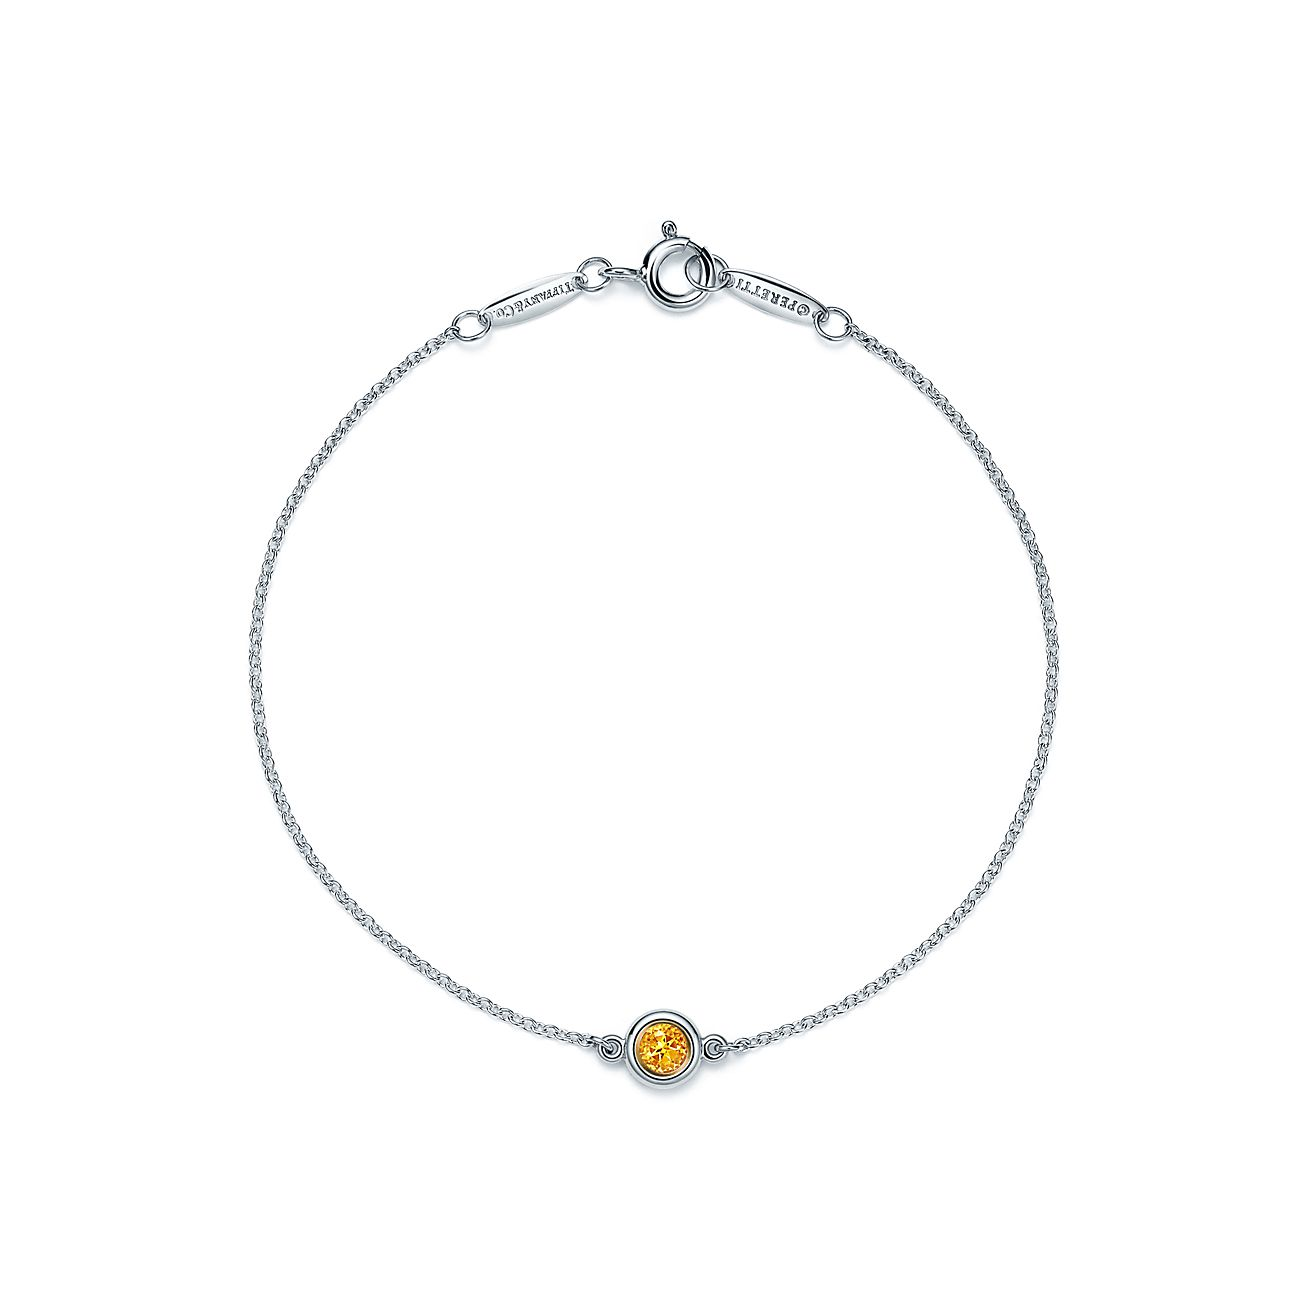 Elsa Peretti Color by the Yard bracelet in sterling silver with a citrine, medi Tiffany & Co.